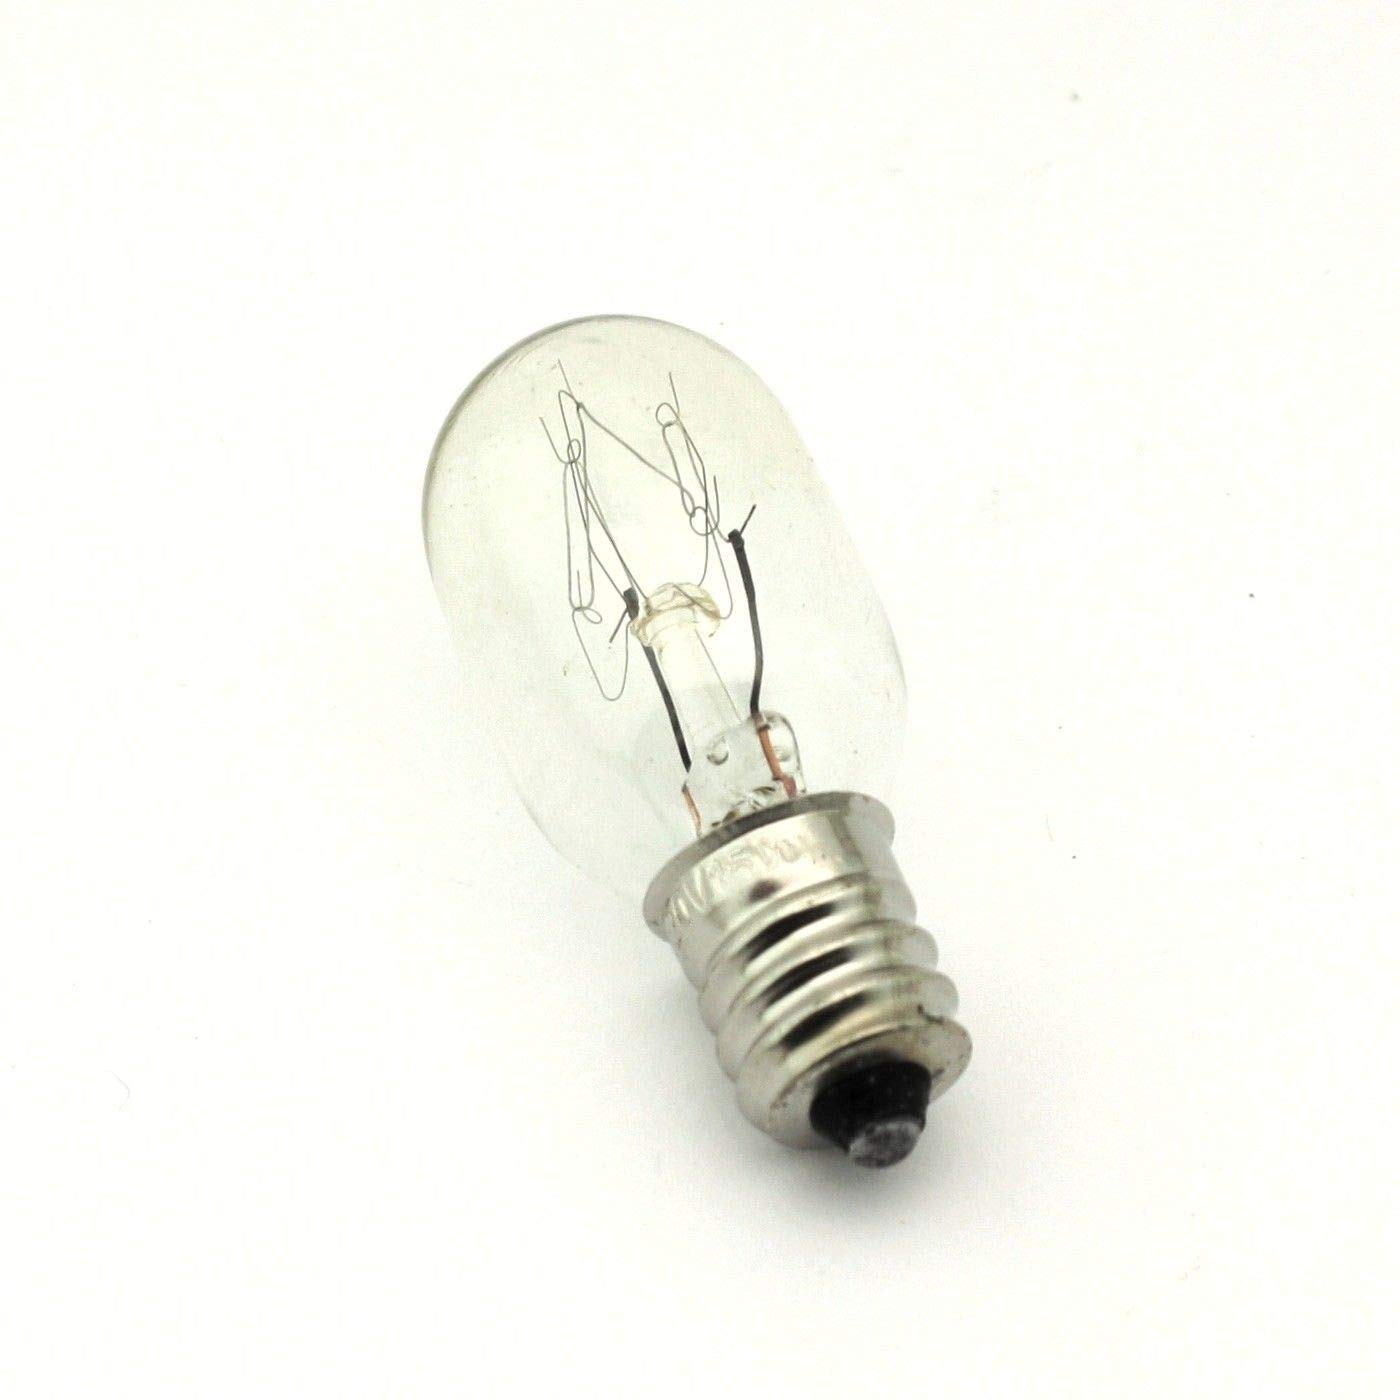 Light Bulb, Screw-in 7/16' Base #9CSW for Home Sewing Machines